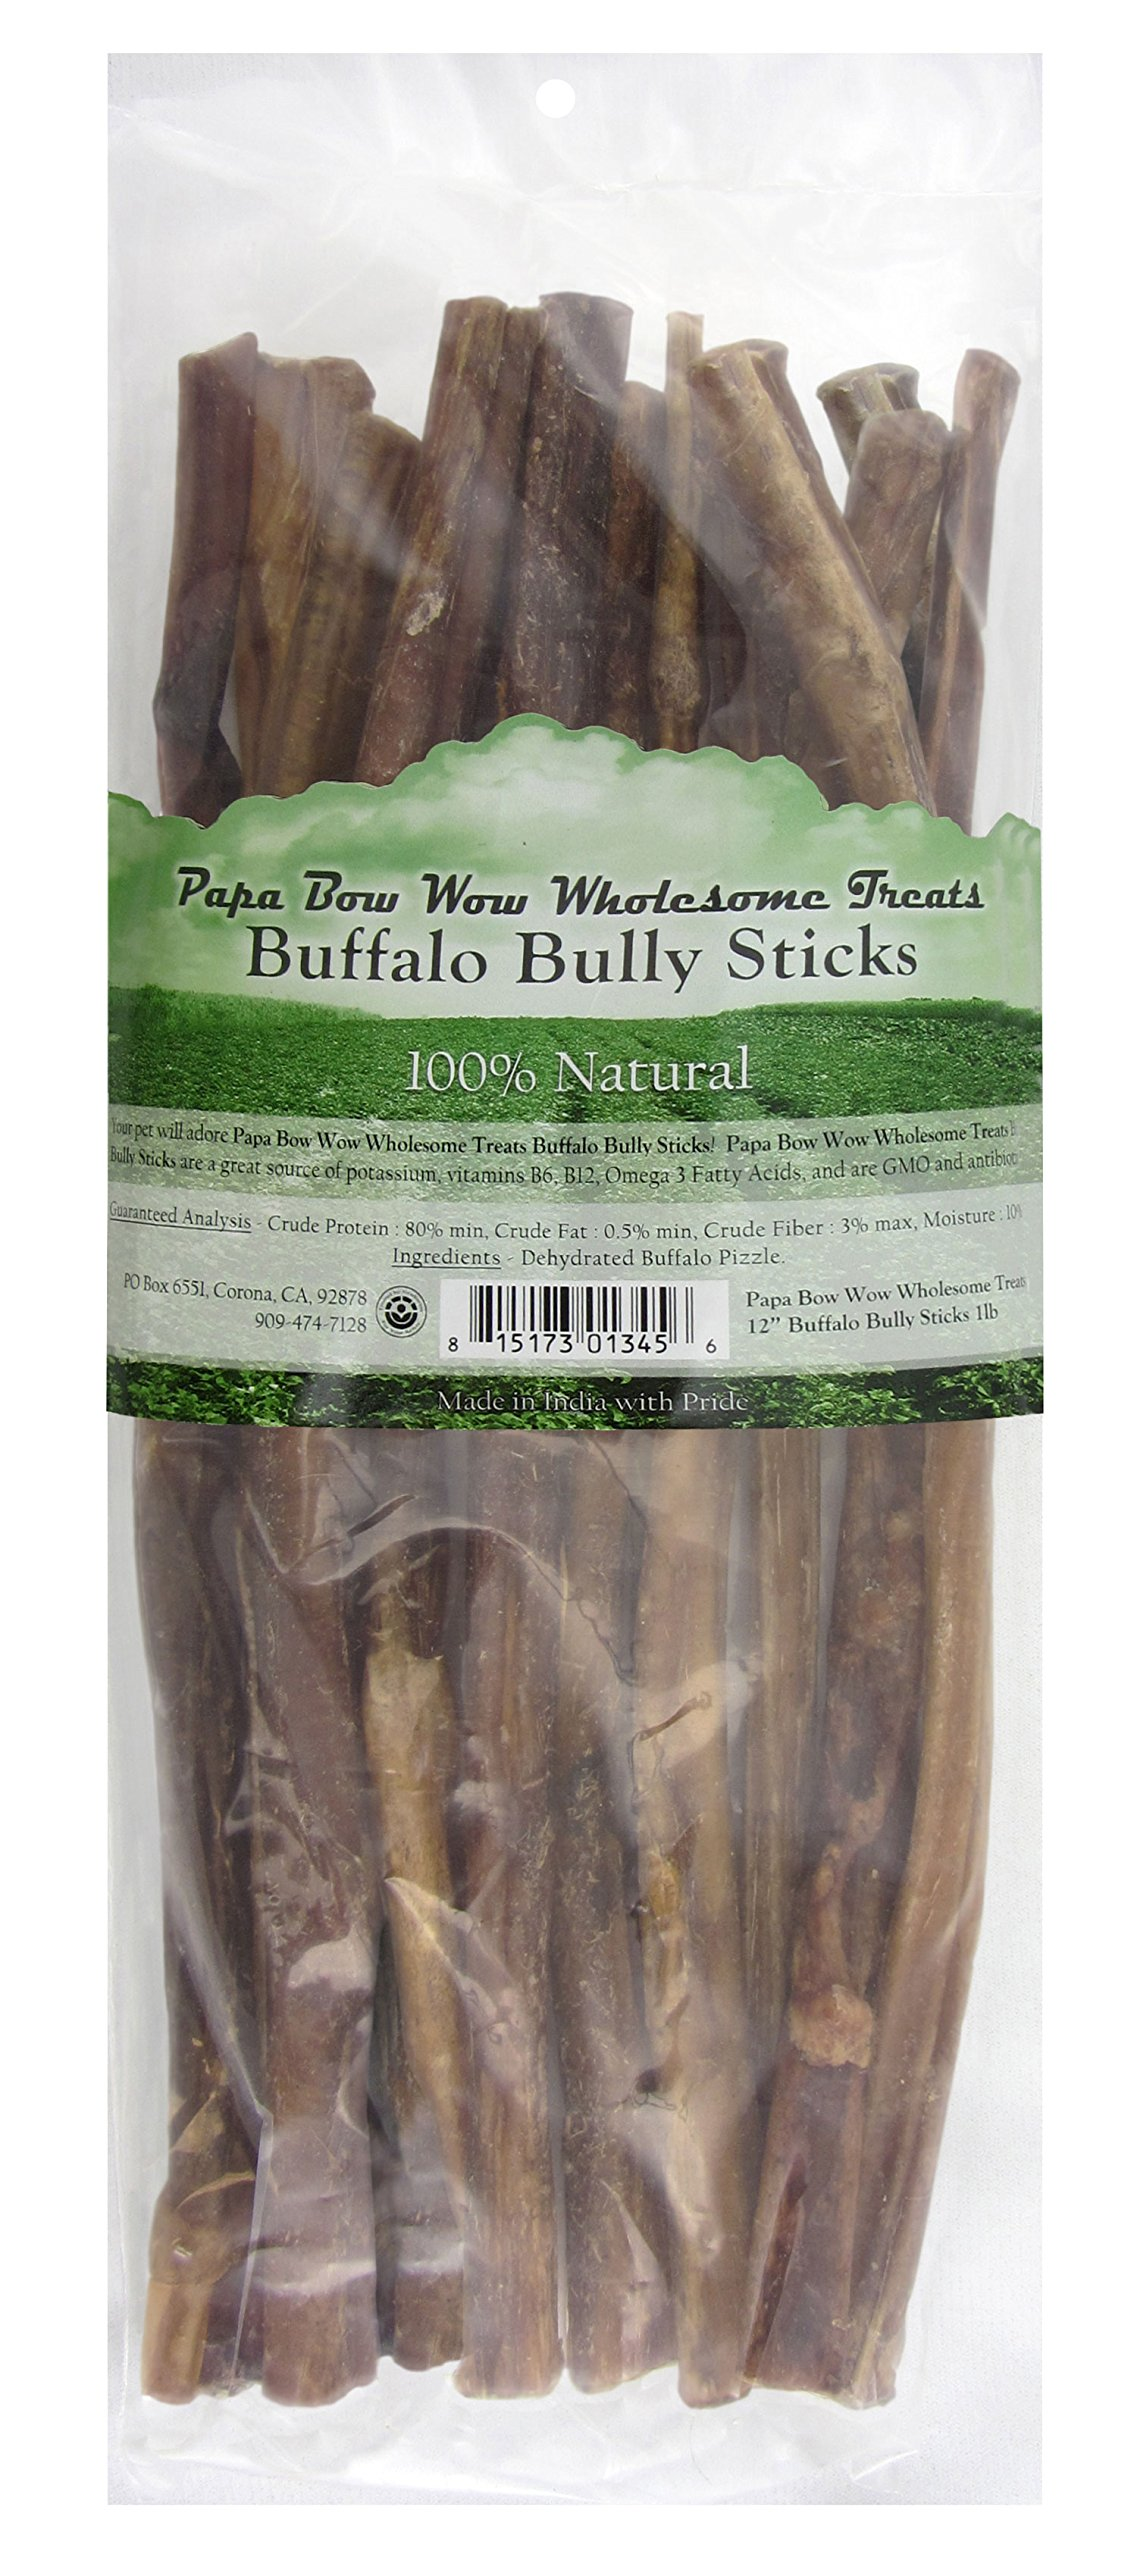 Papa Bow Wow Wholesome Treats 018666 Buffalo Bully Stix 50 PieceDog Treats, 12''